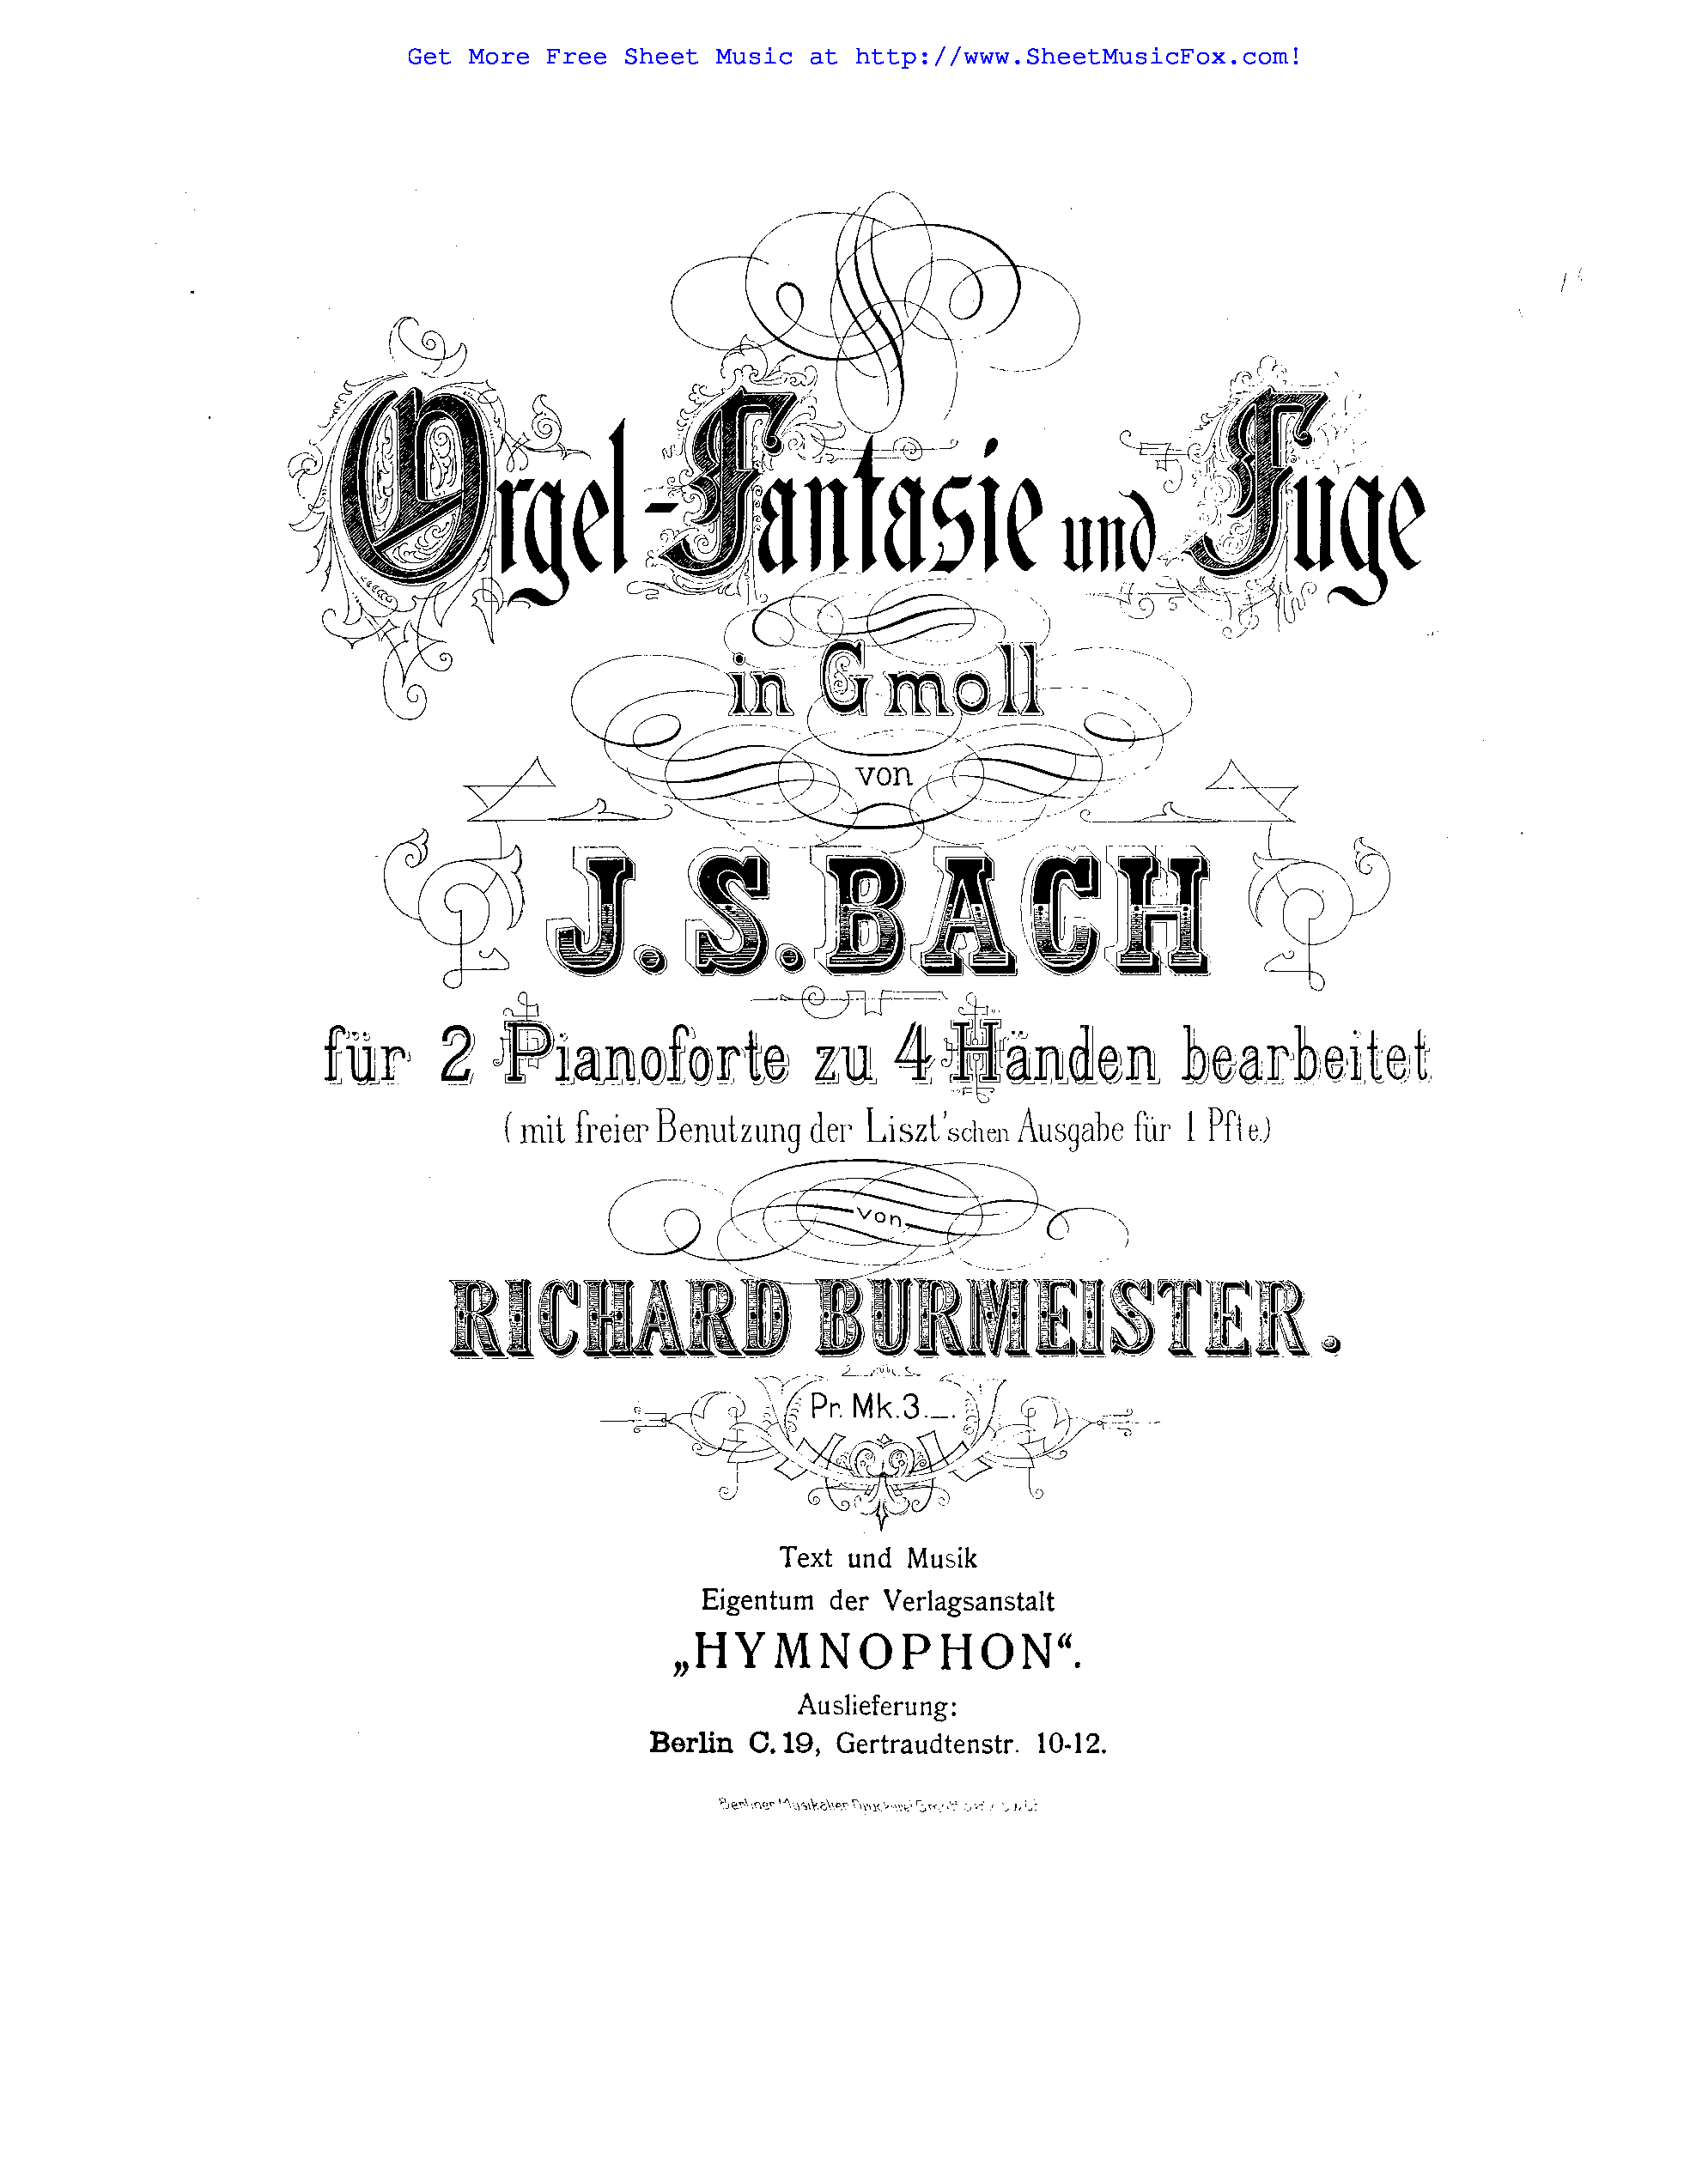 Free sheet music for Fantasia and Fugue in G minor, BWV